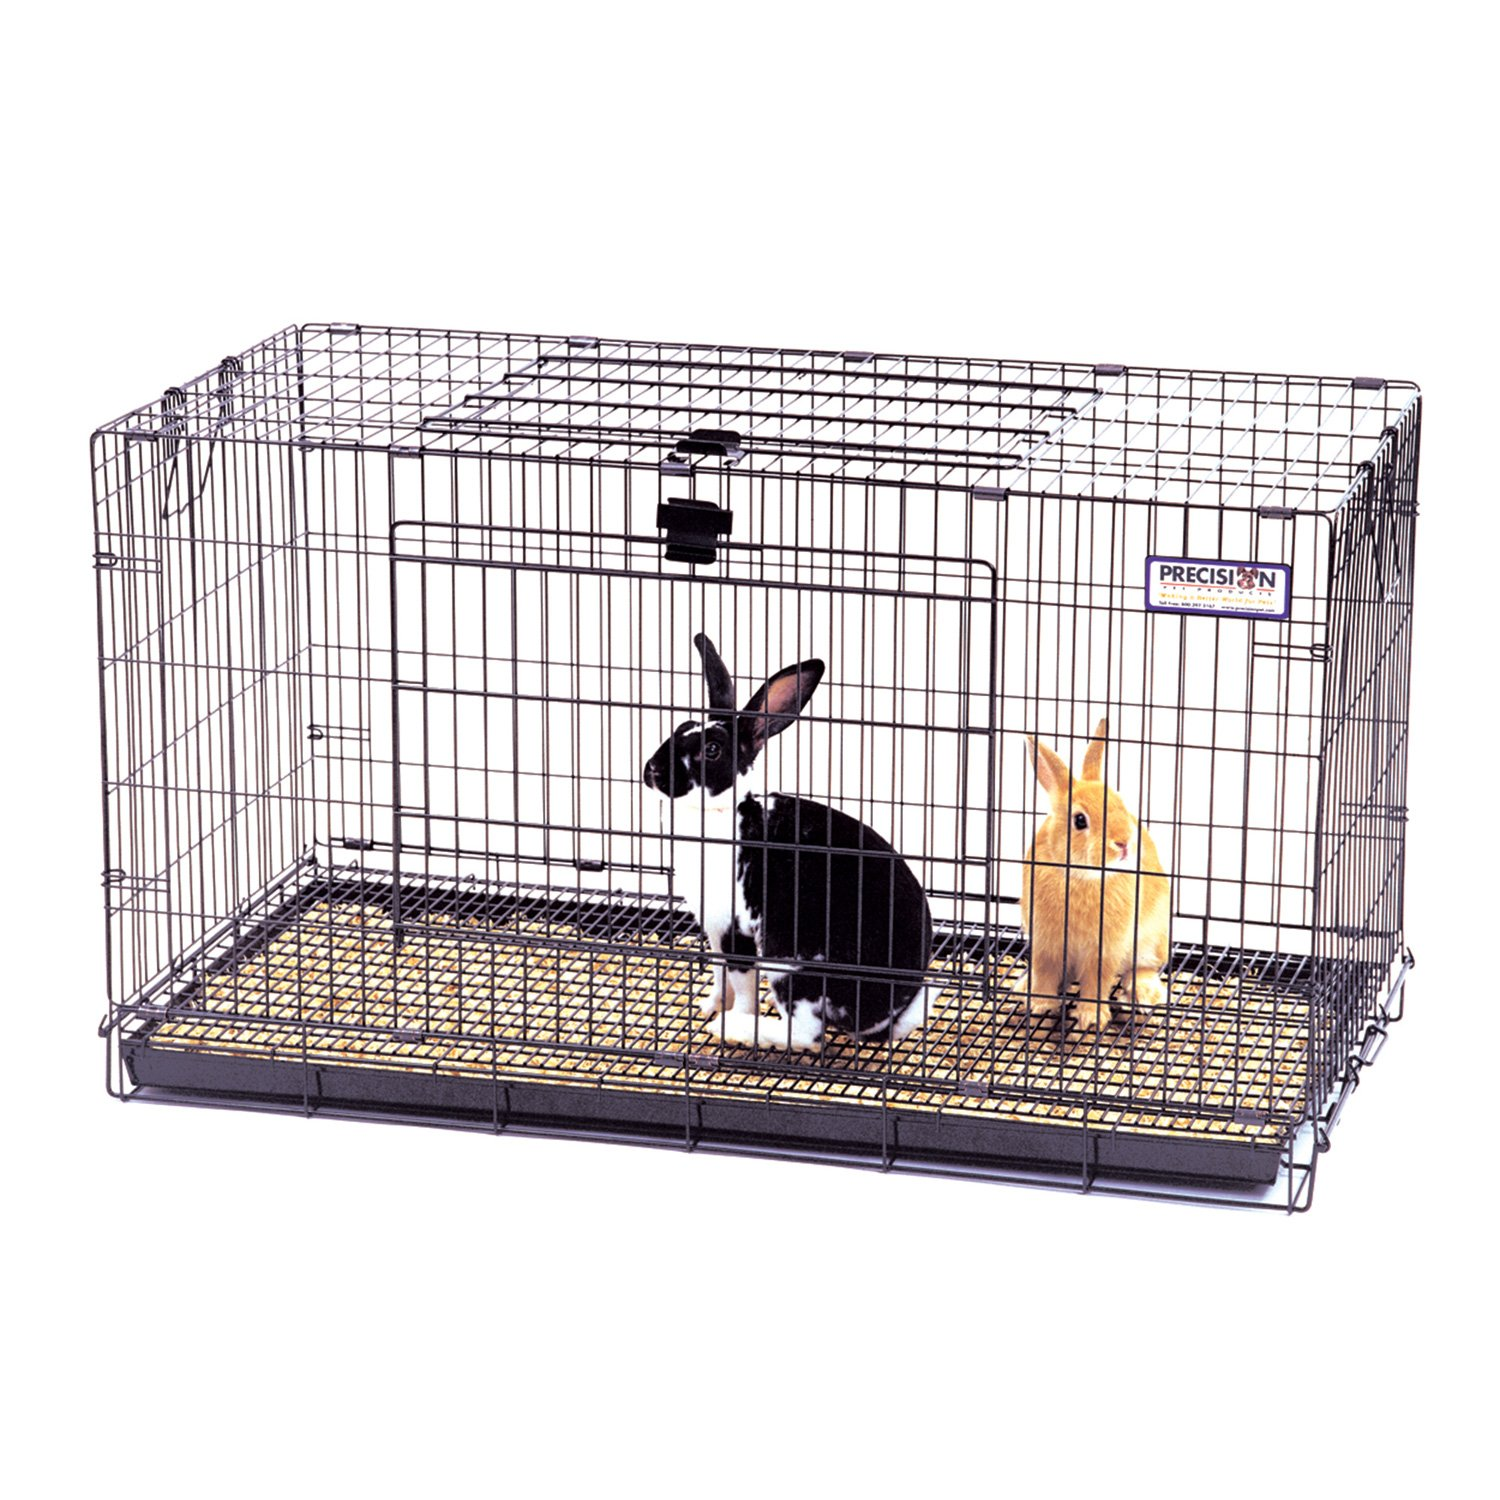 Precision Pet Pens, Crates, Gates & More | Petco